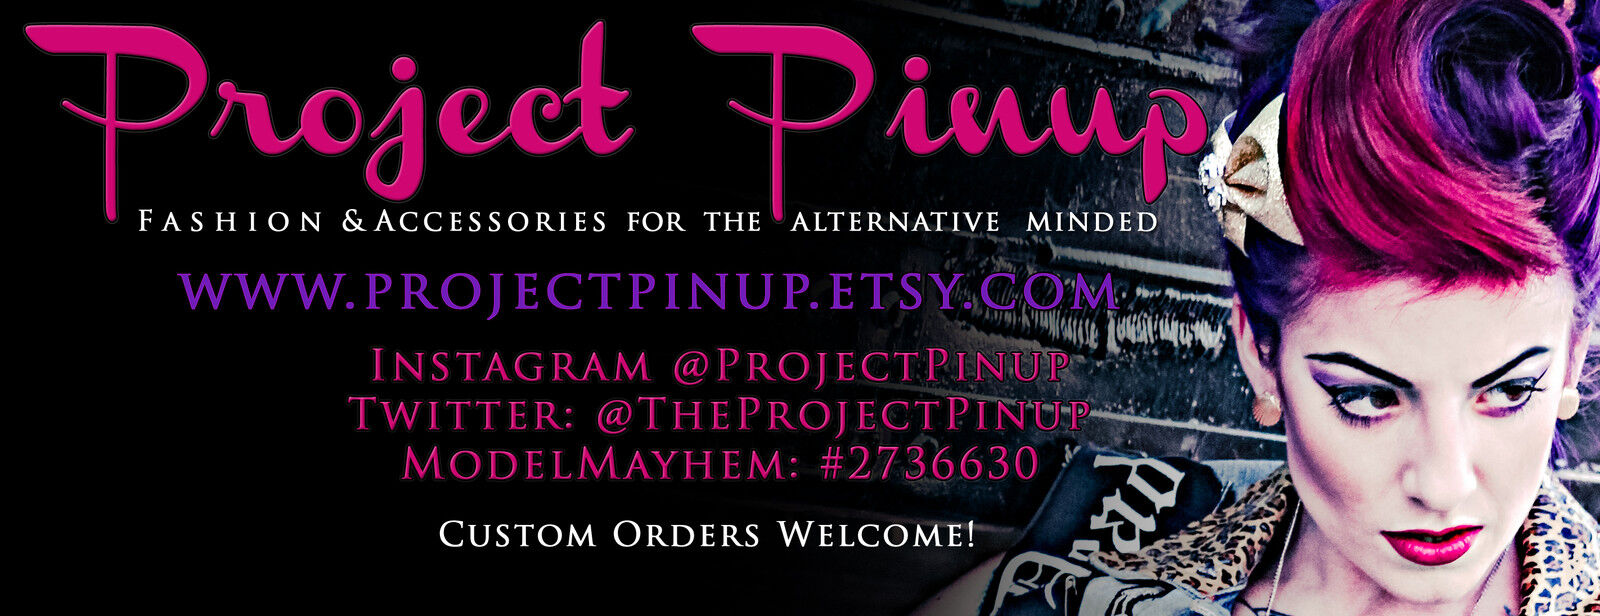 Project Pinup Fashion & Accessories